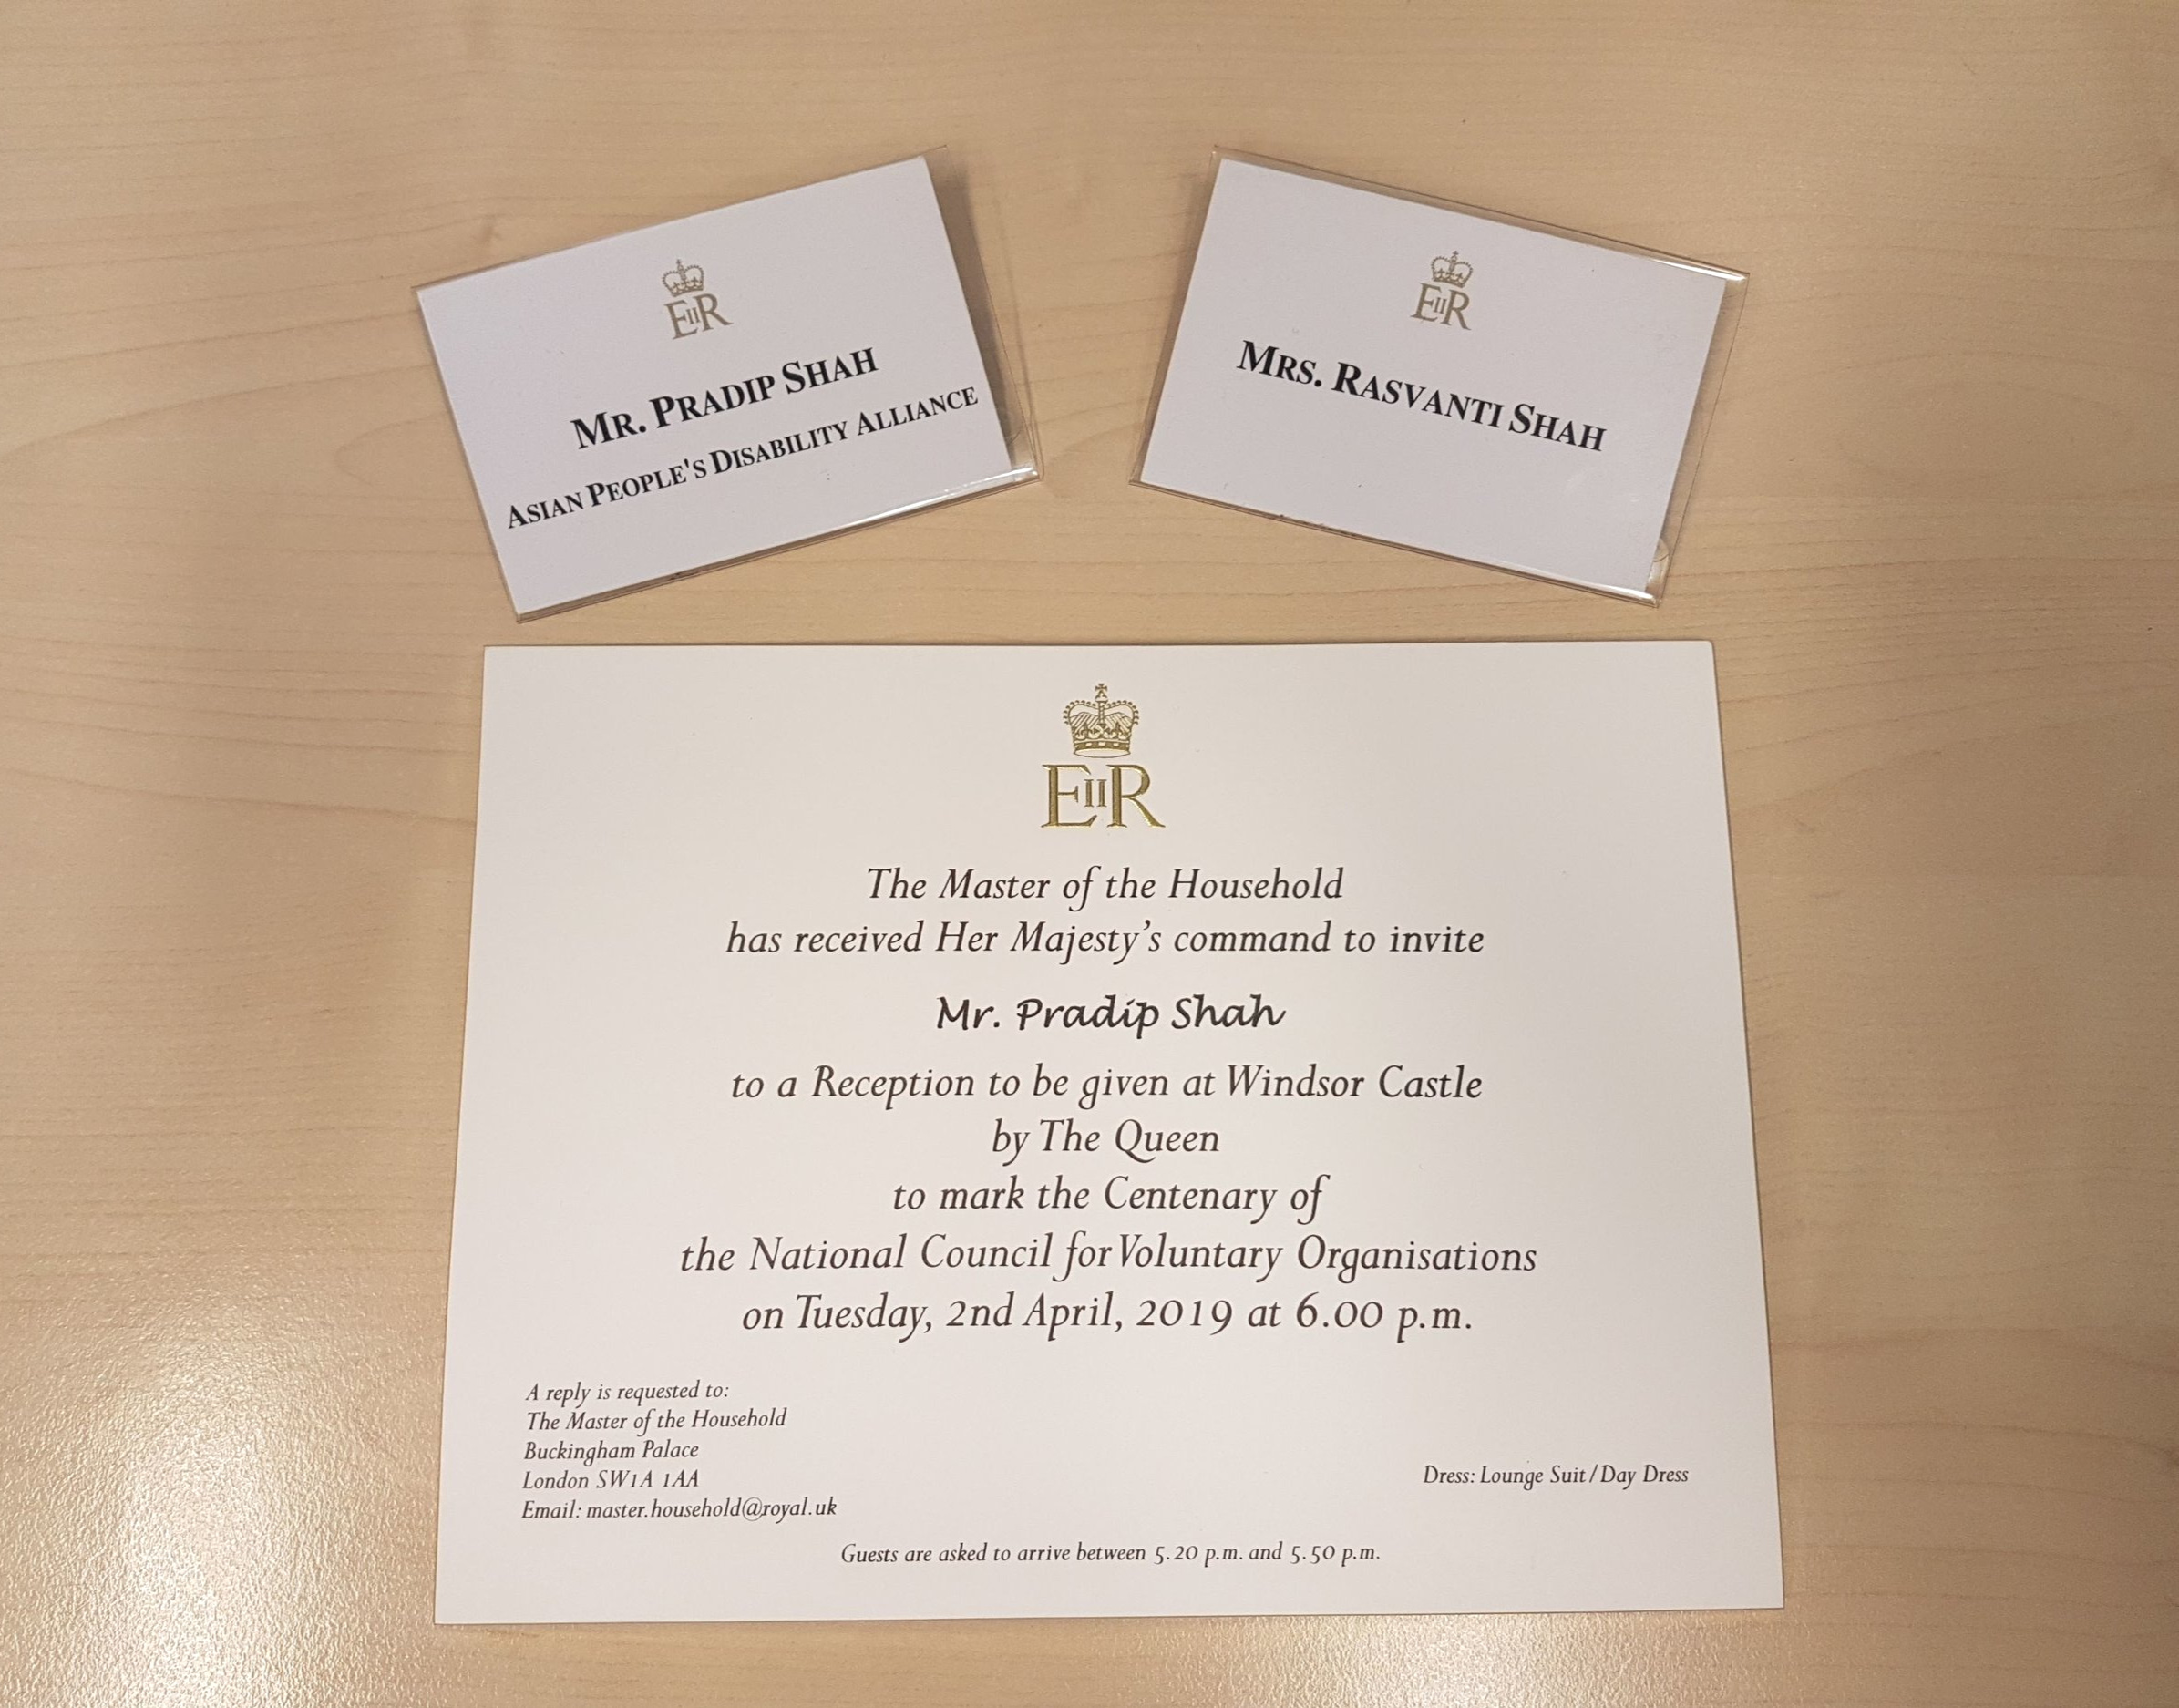 02 April 2019 - Pradip Shah (Chairperon) and Rashmi Shah (Chairperon's wife) attended Her Majesty the Queen Reception to mark the centenary of The National Council for Voluntary Organisations at Windsor Castle (pictures to follow)